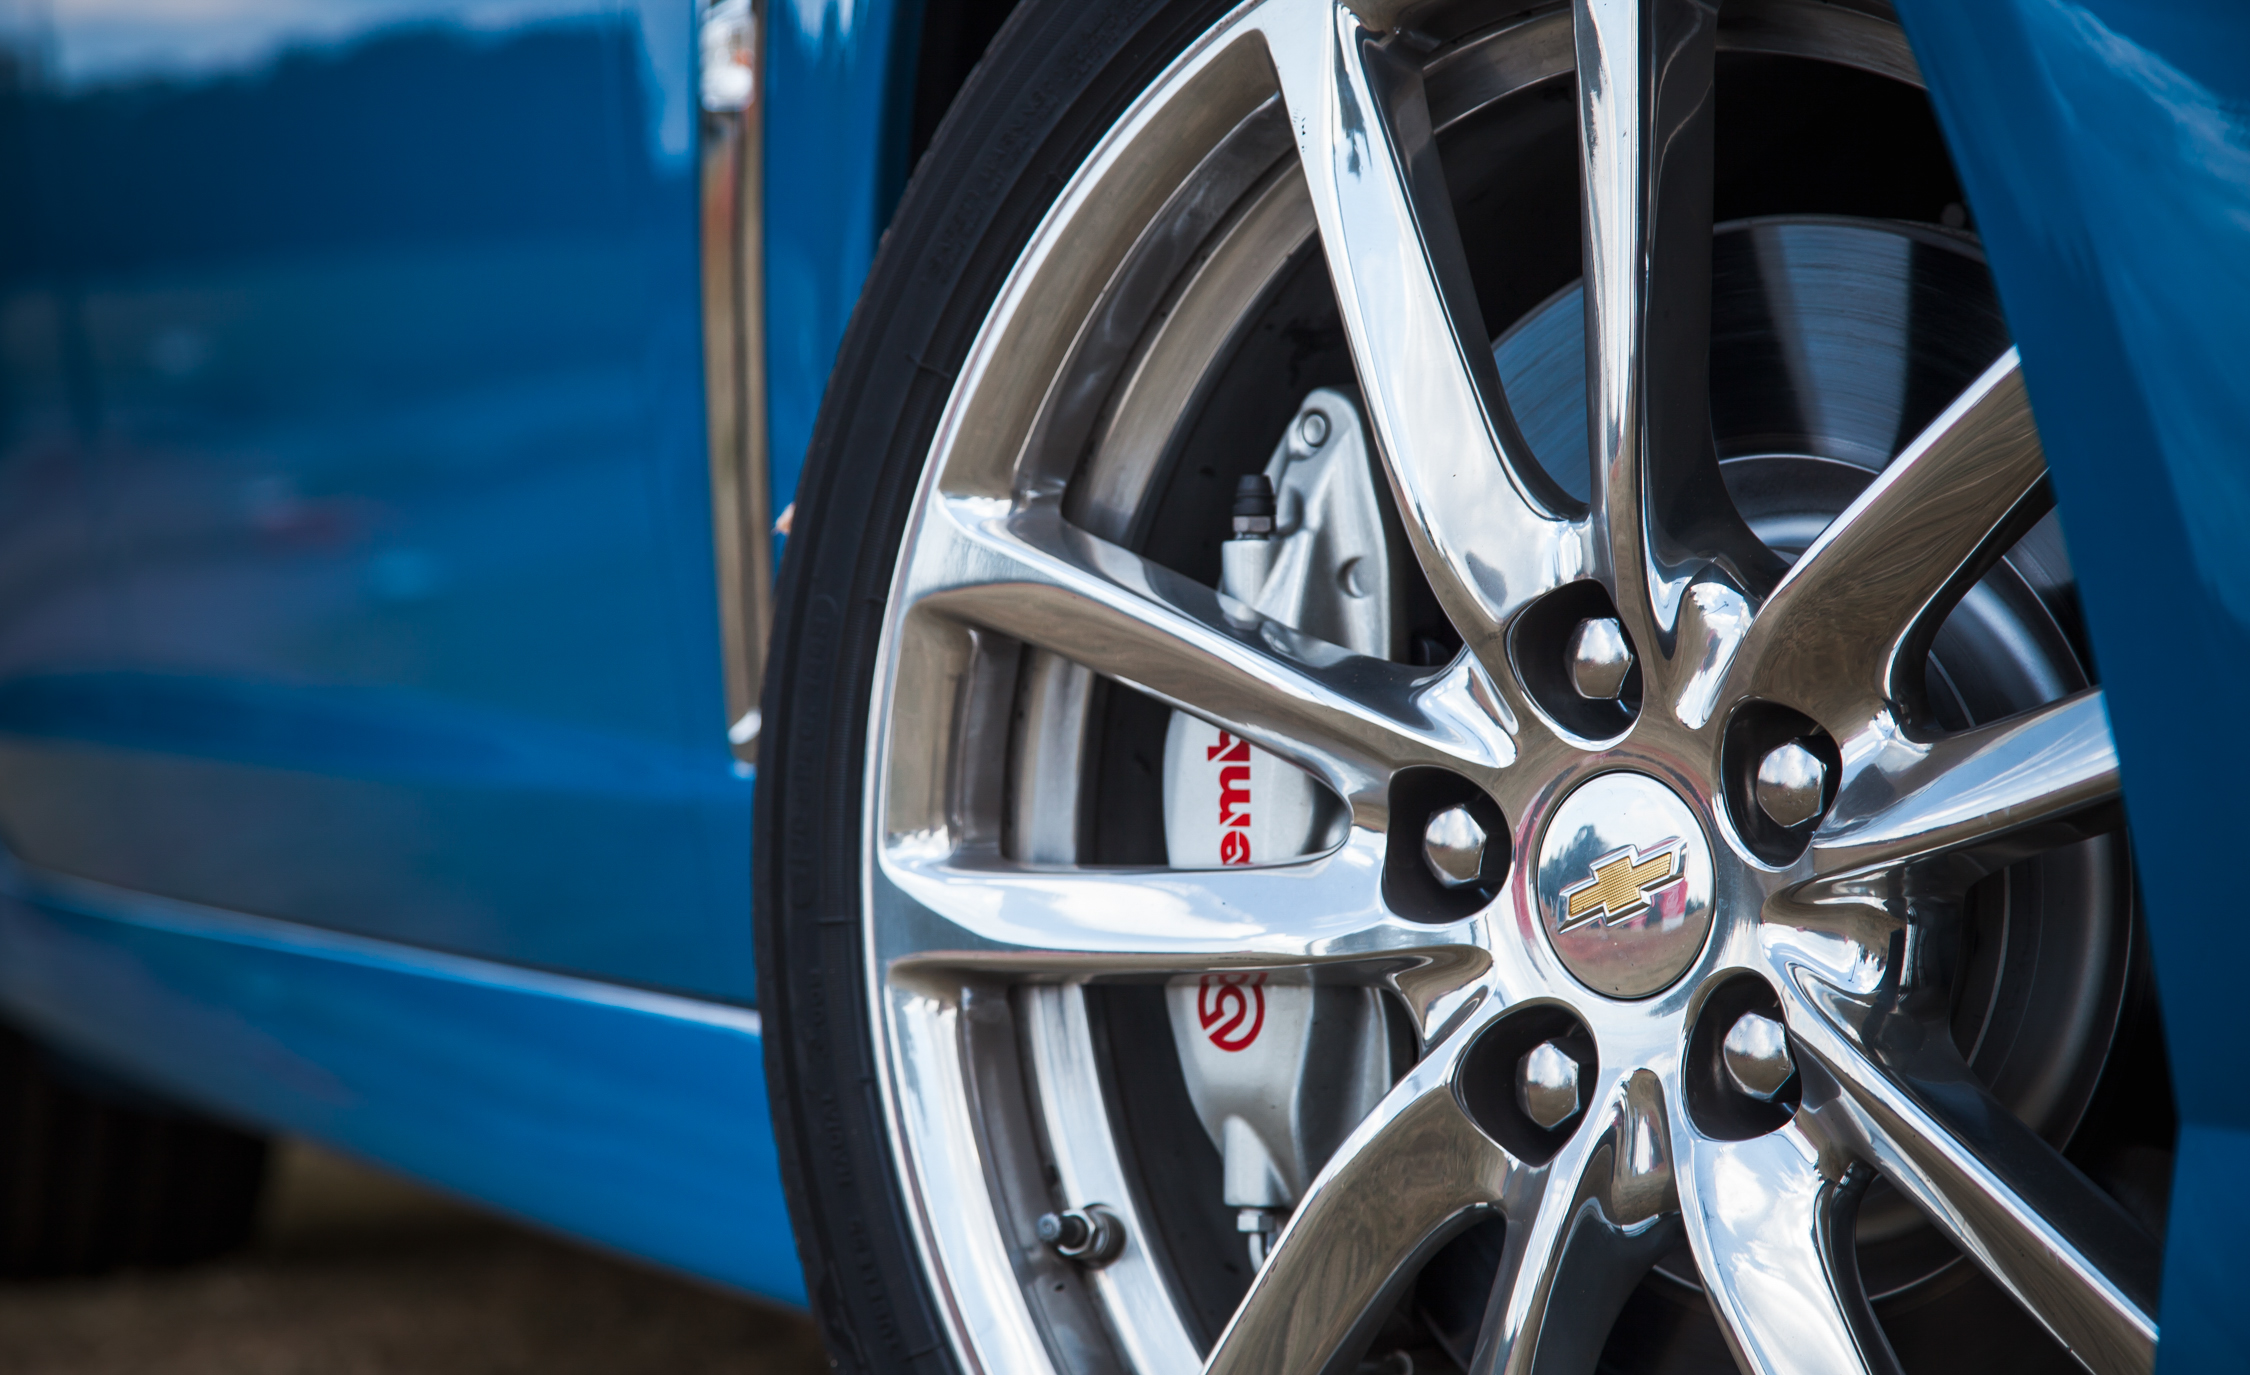 2015 Chevrolet SS Exterior Wheel Trim